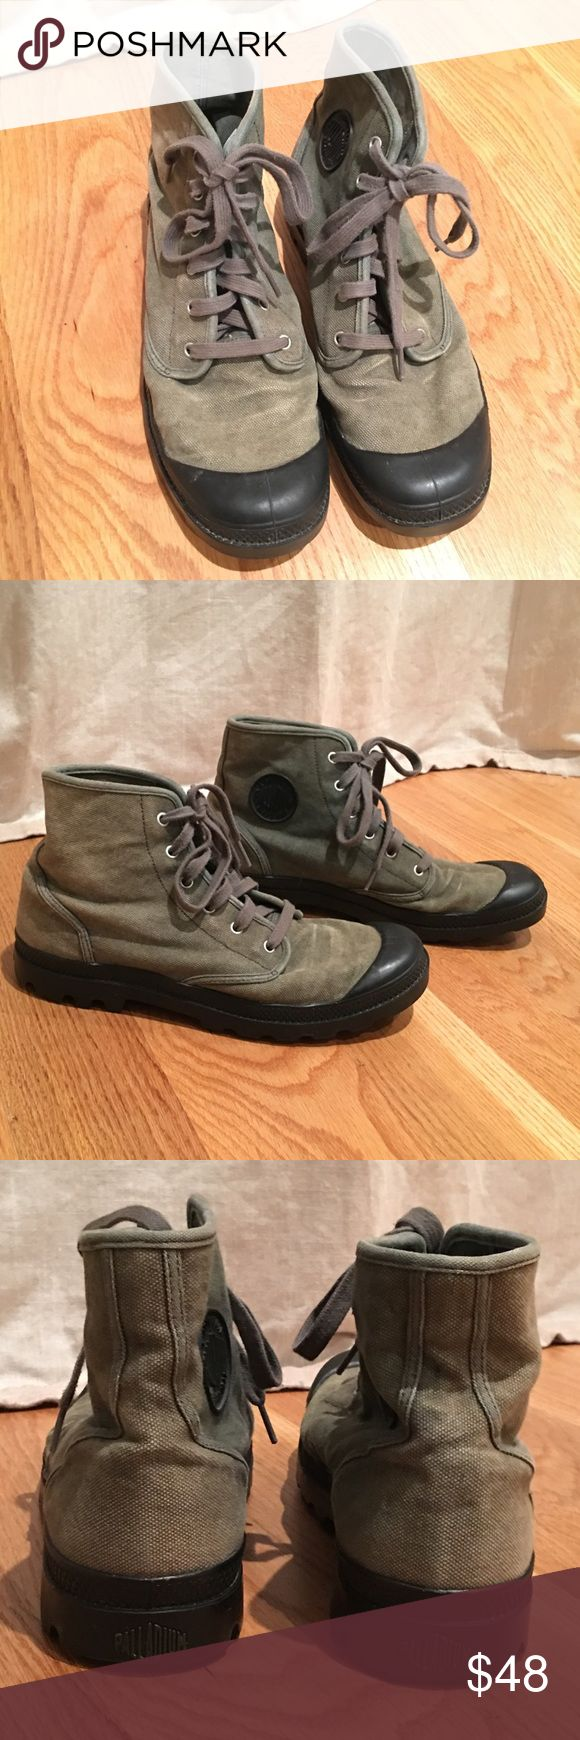 Olive PALLADIUM Men's Boots Great pair of canvas boots! Fashionable and functional! In excellent condition with some minor imperfections...please see all photos! Palladium Shoes Boots